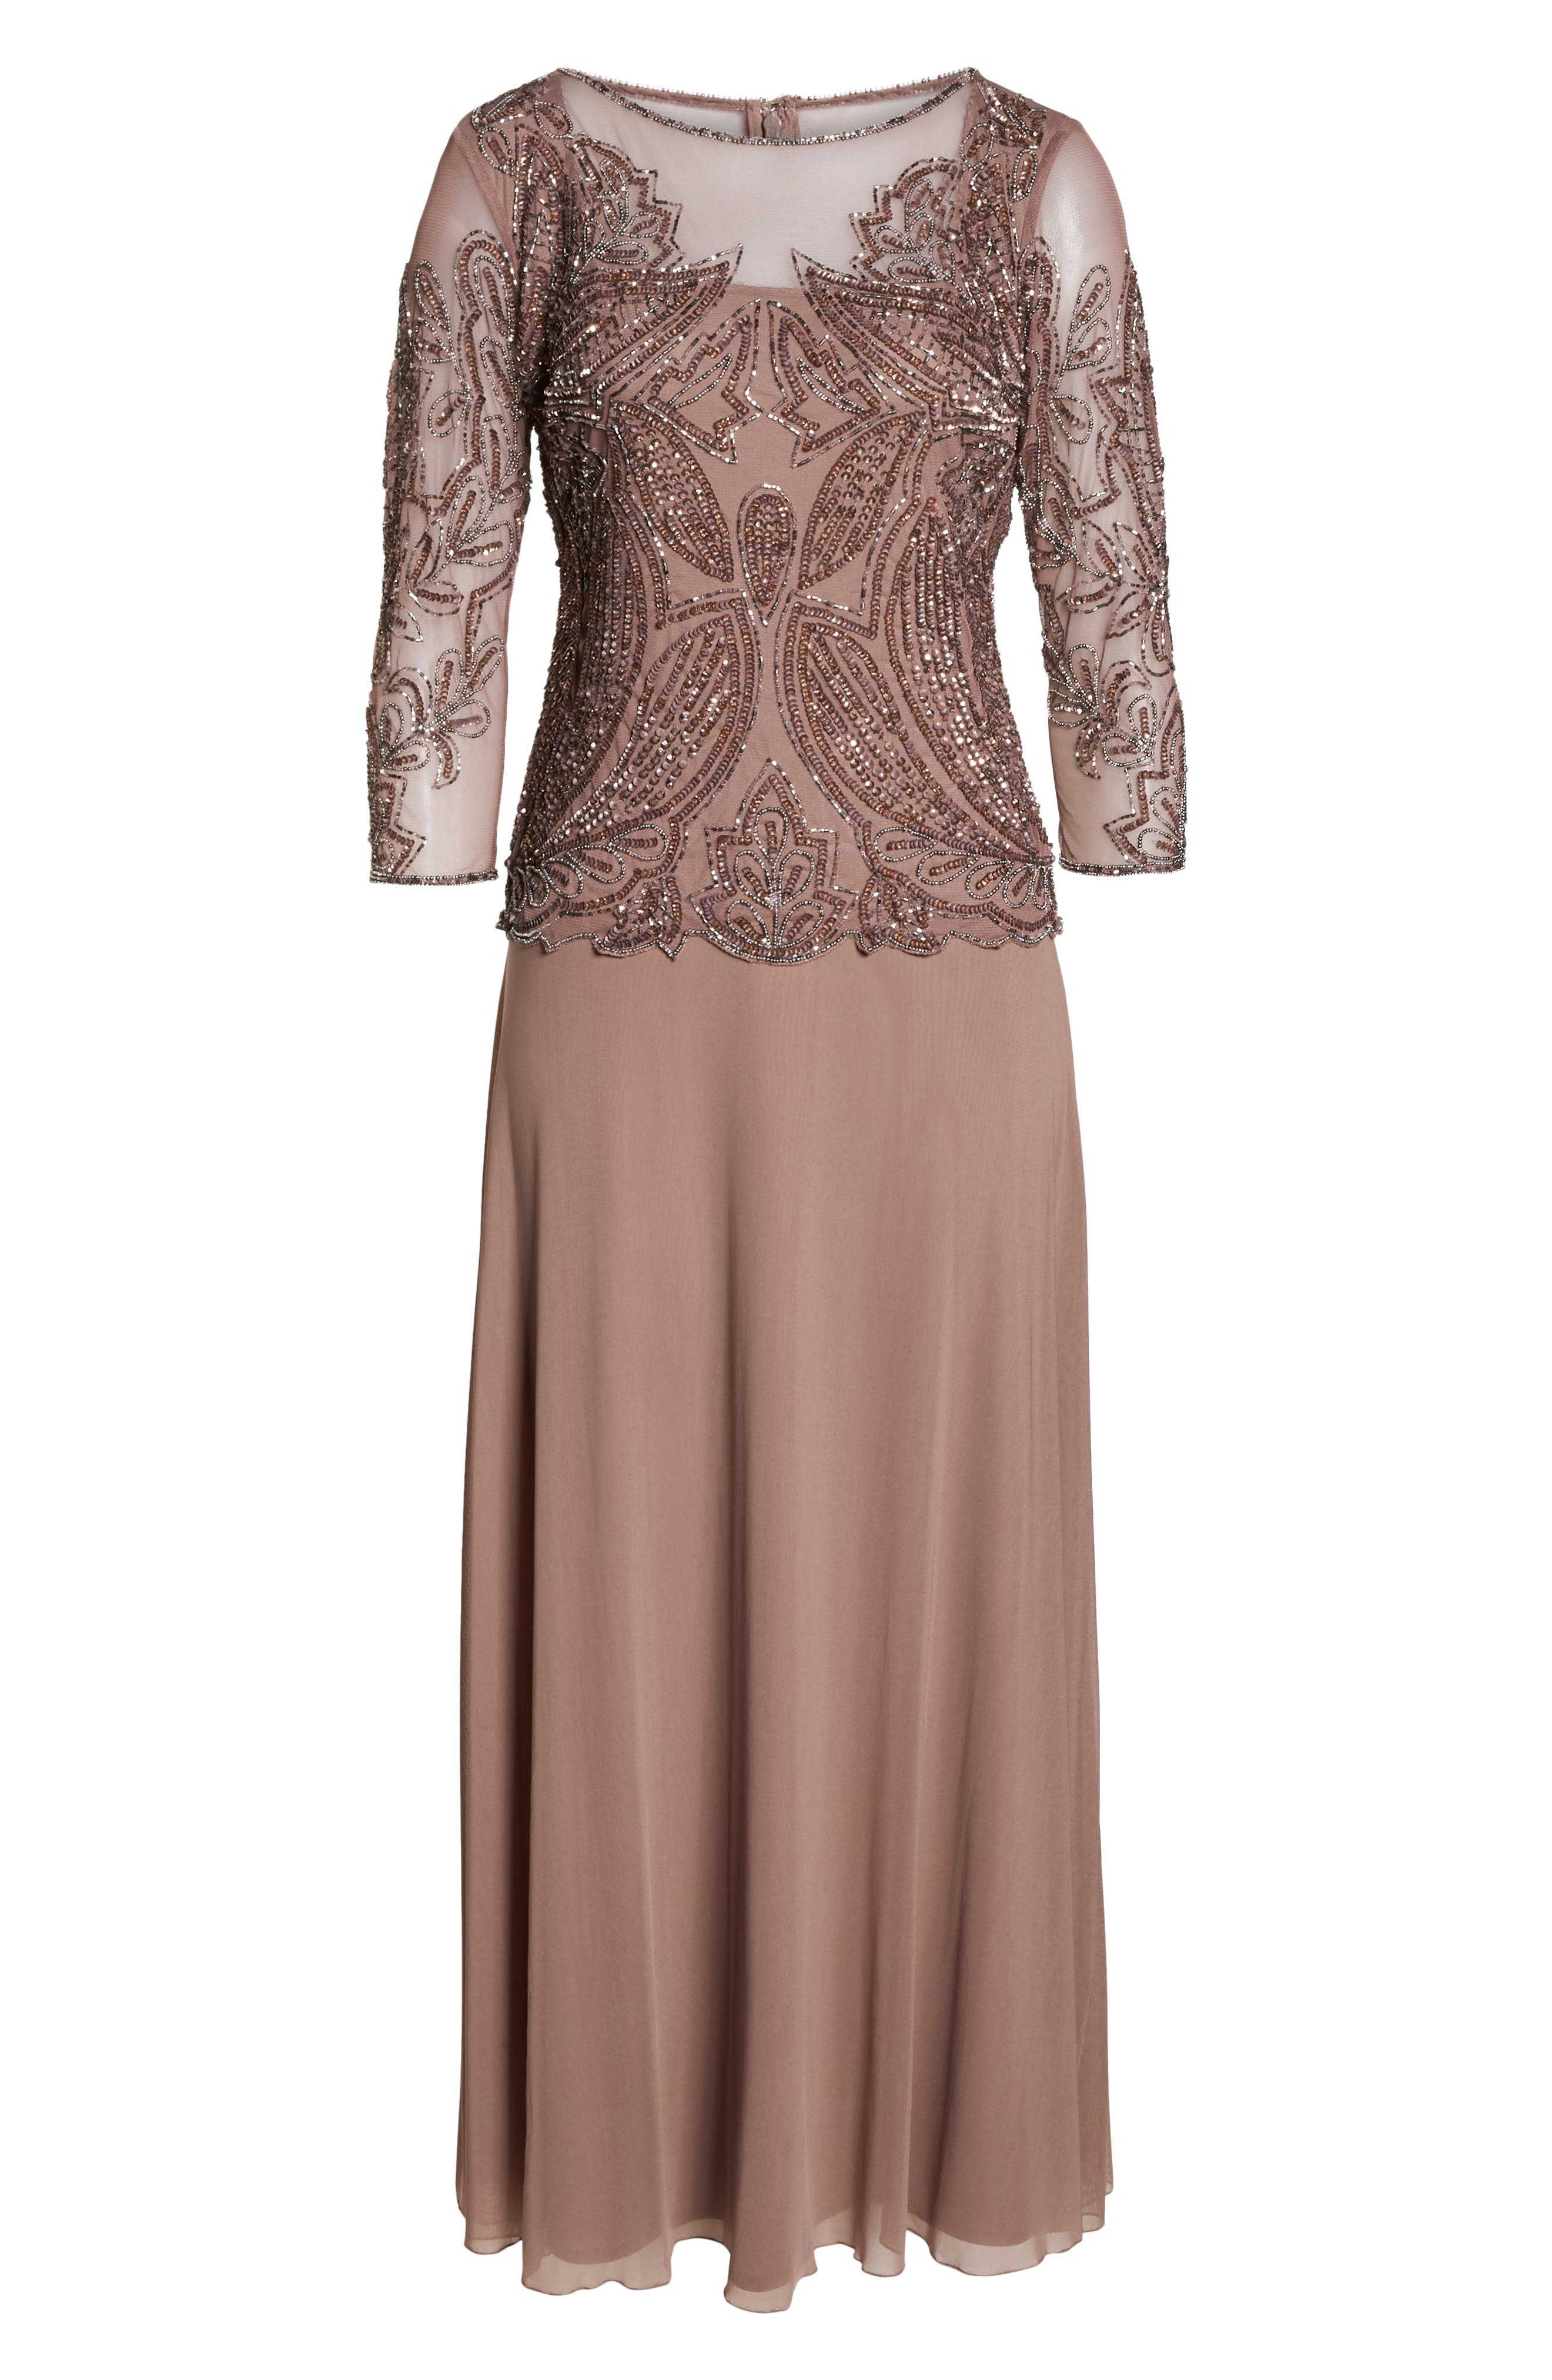 PISARRO NIGHTS, Embellished Mesh Gown, Alternate thumbnail 7, color, MAUVE